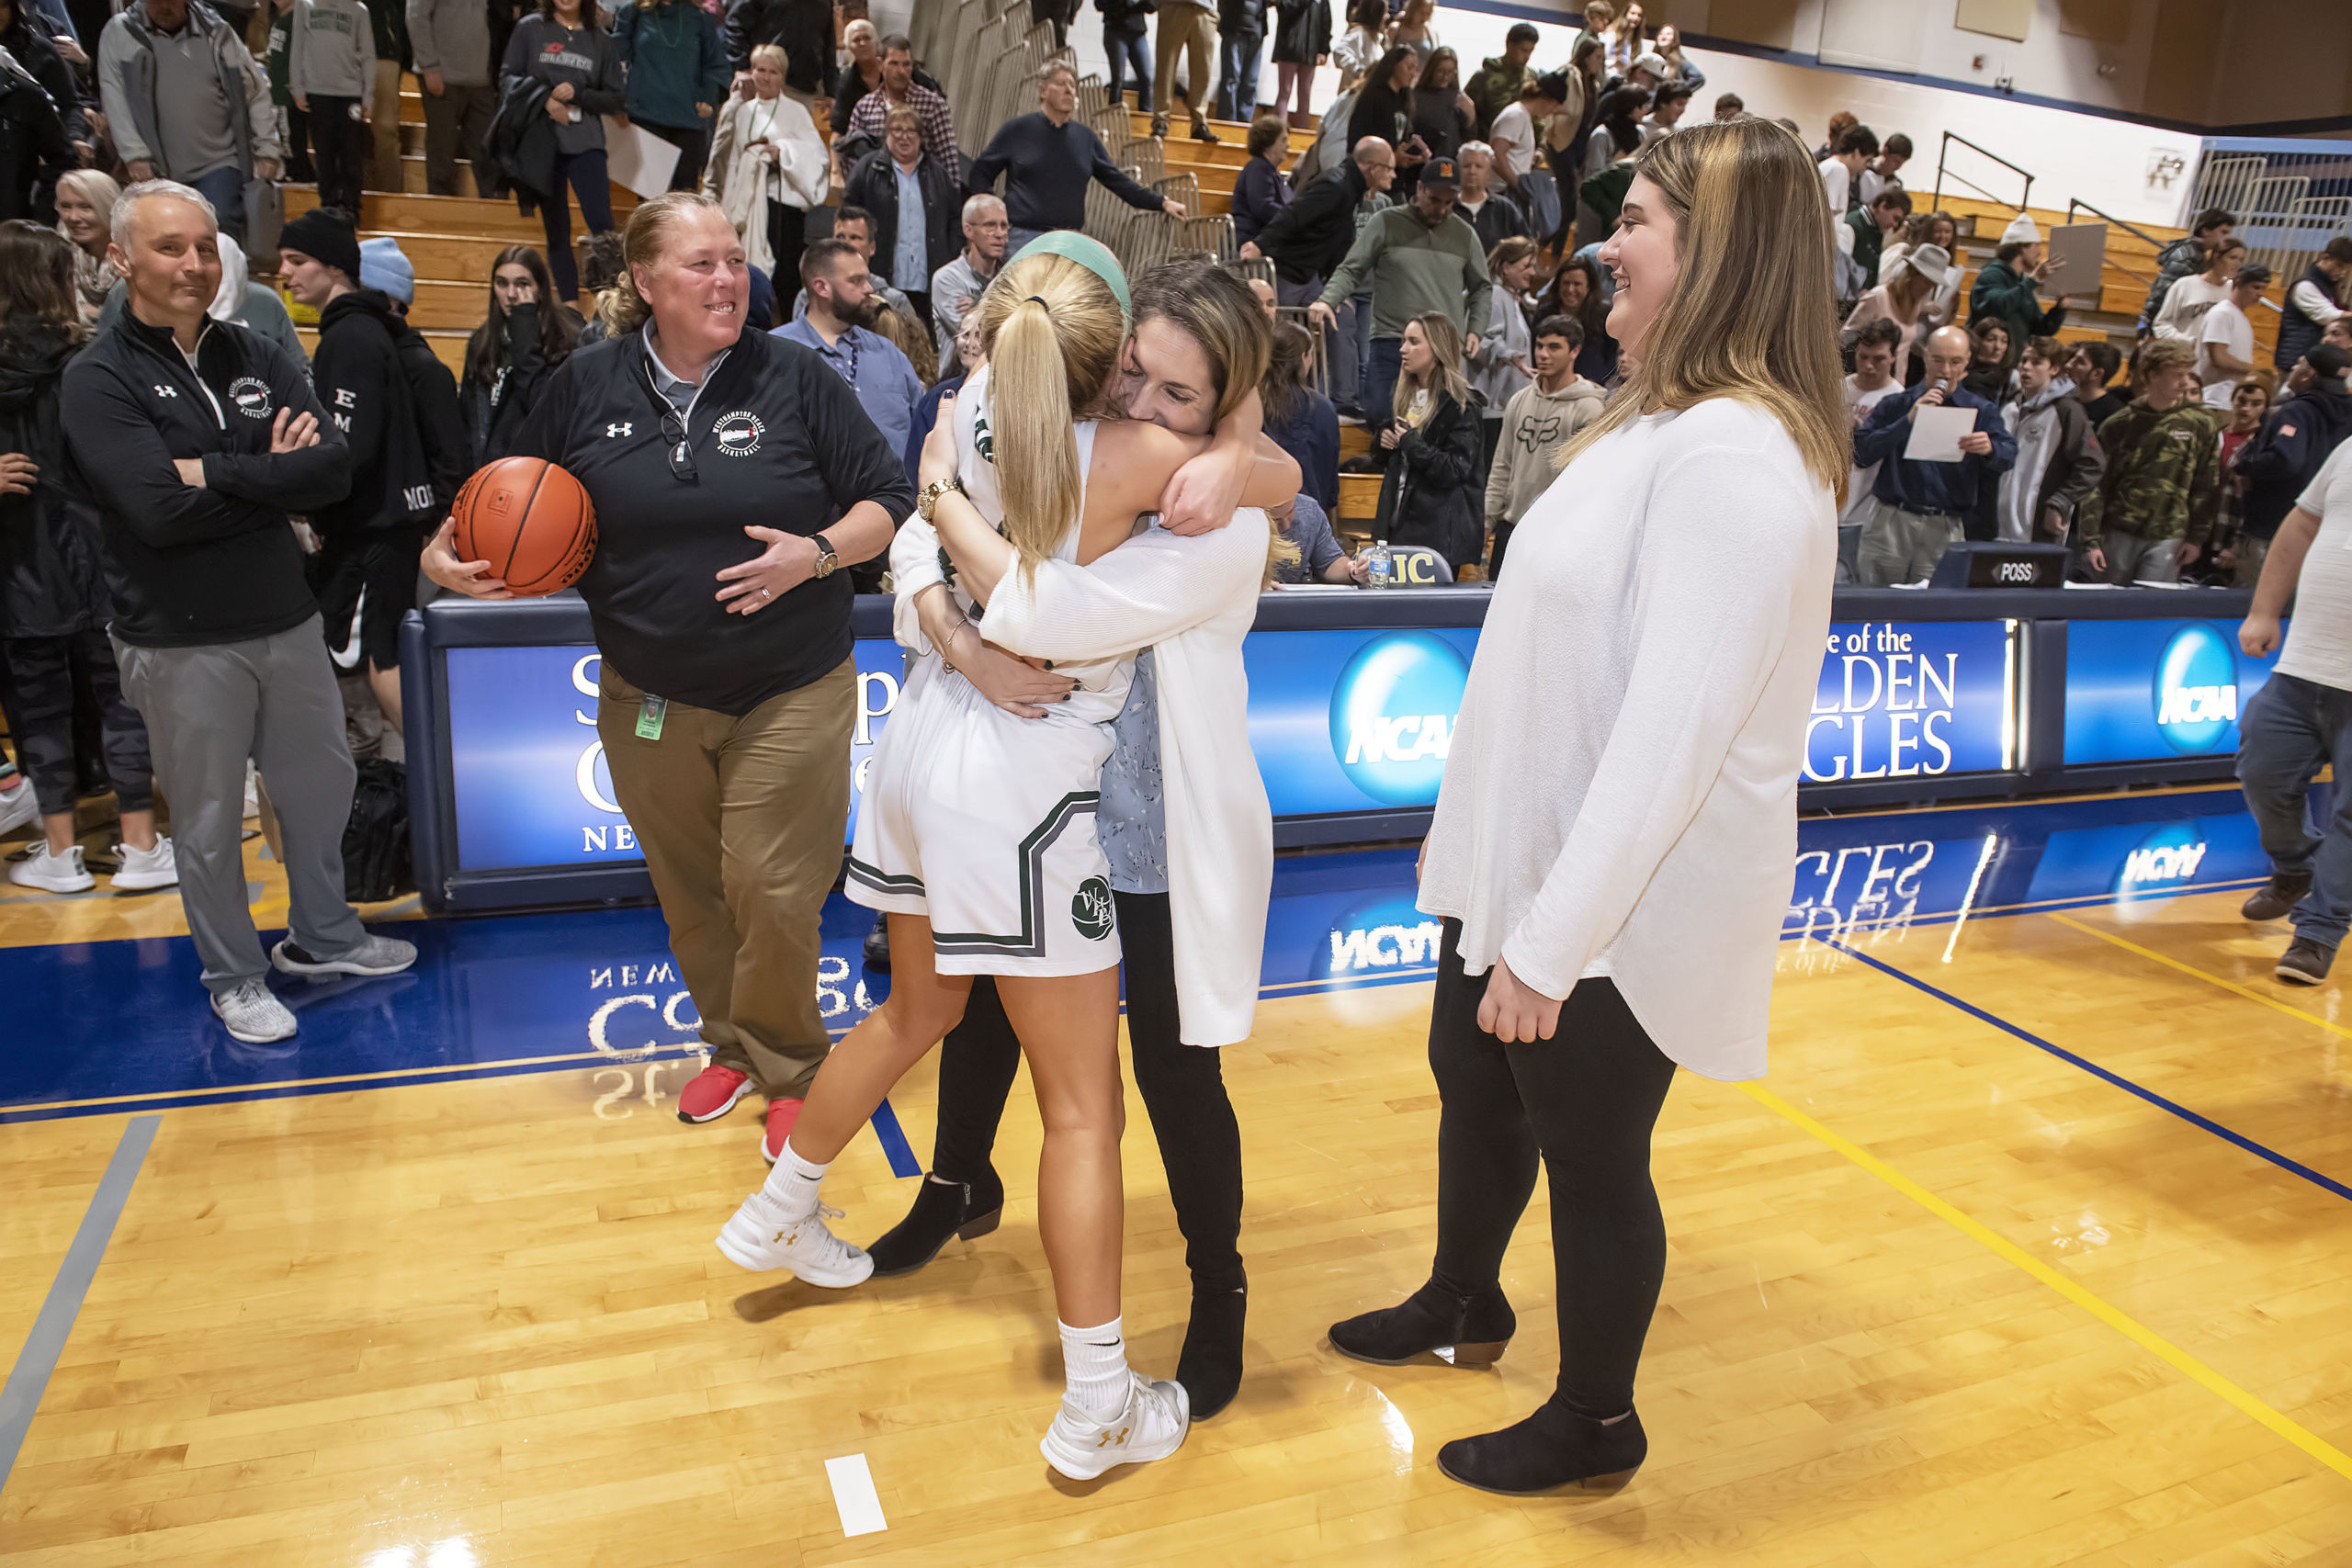 Westhampton Beach senior Isabelle Smith and head coach Katie Peters embrace each other after a hard fought victory for the county title on Tuesday night.